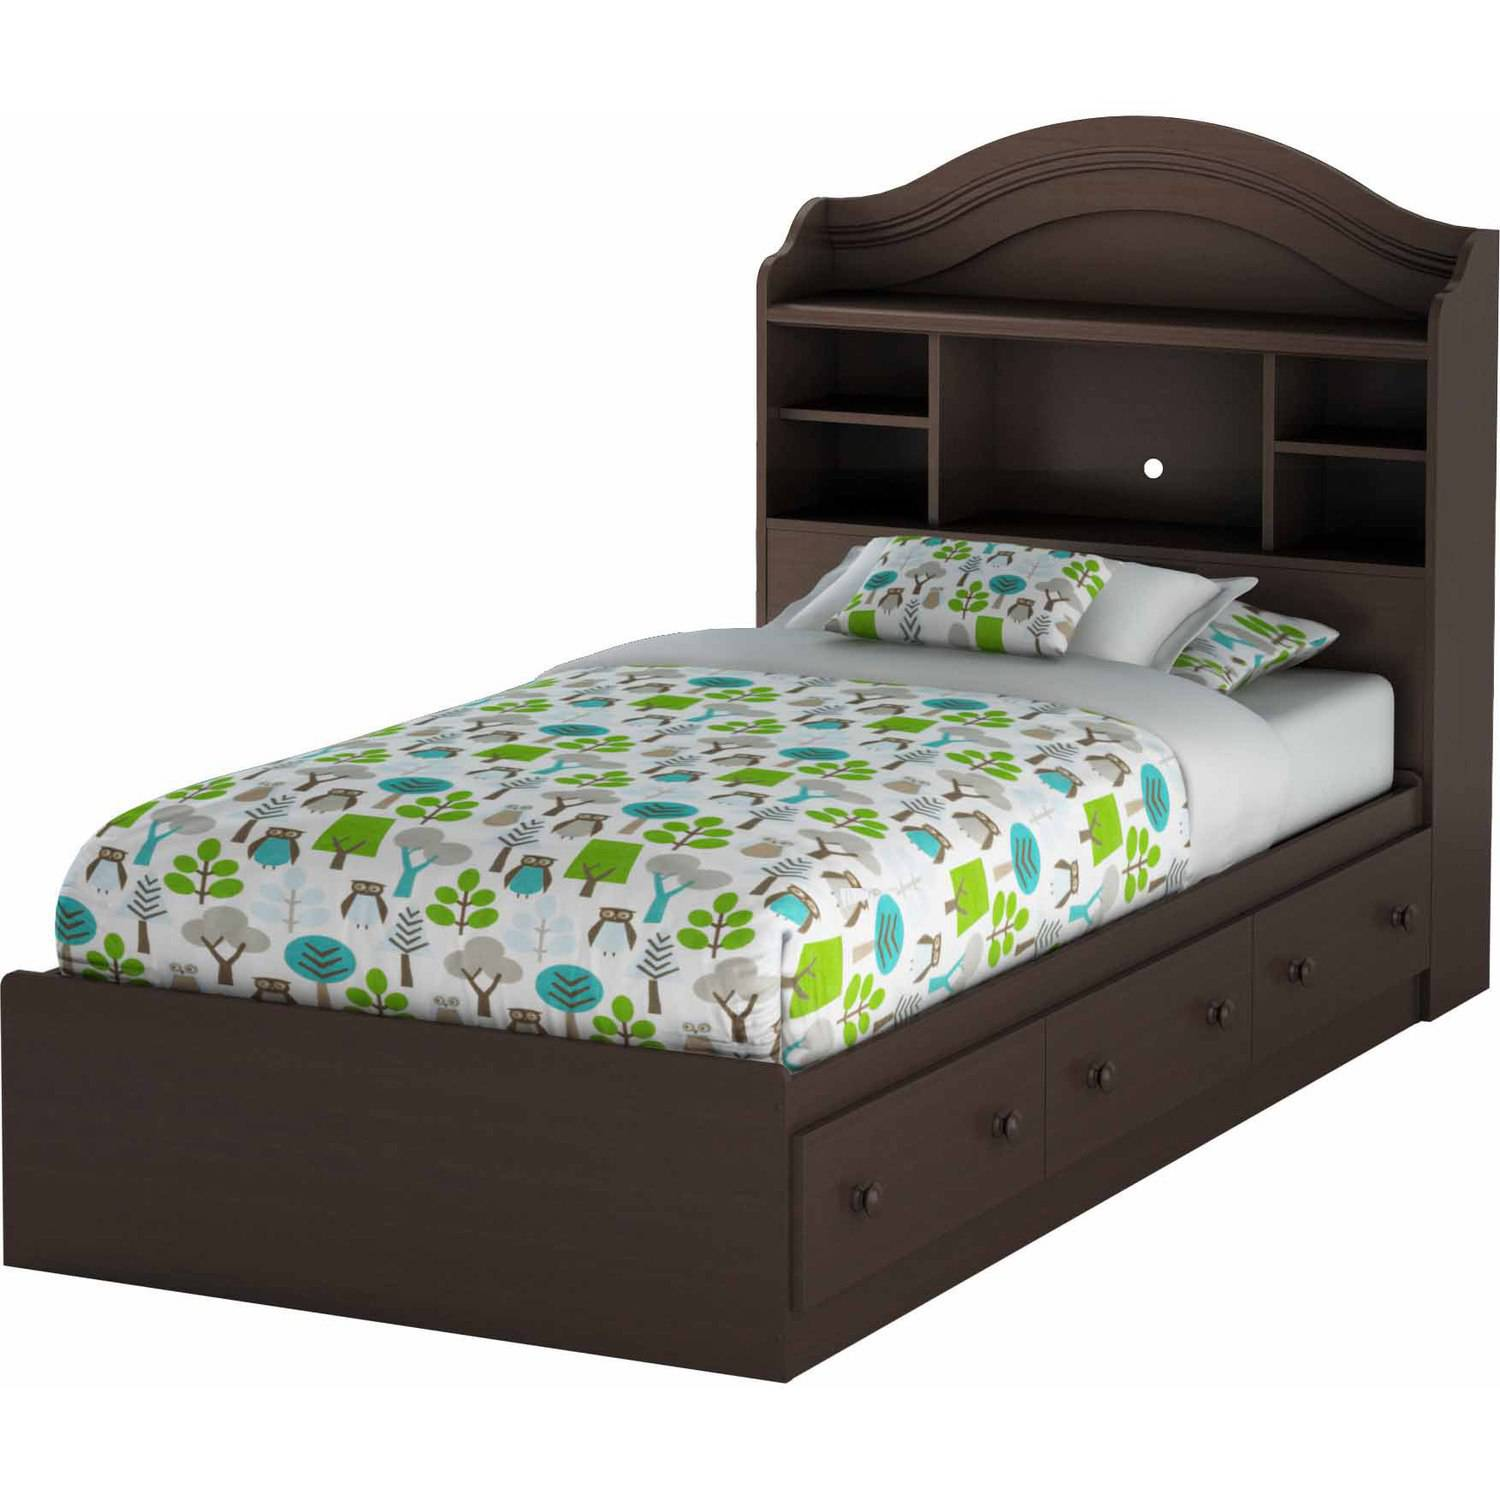 Twin bed with storage and headboard - South Shore Savannah Twin Bookcase Headboard 39 Multiple Finishes Walmart Com